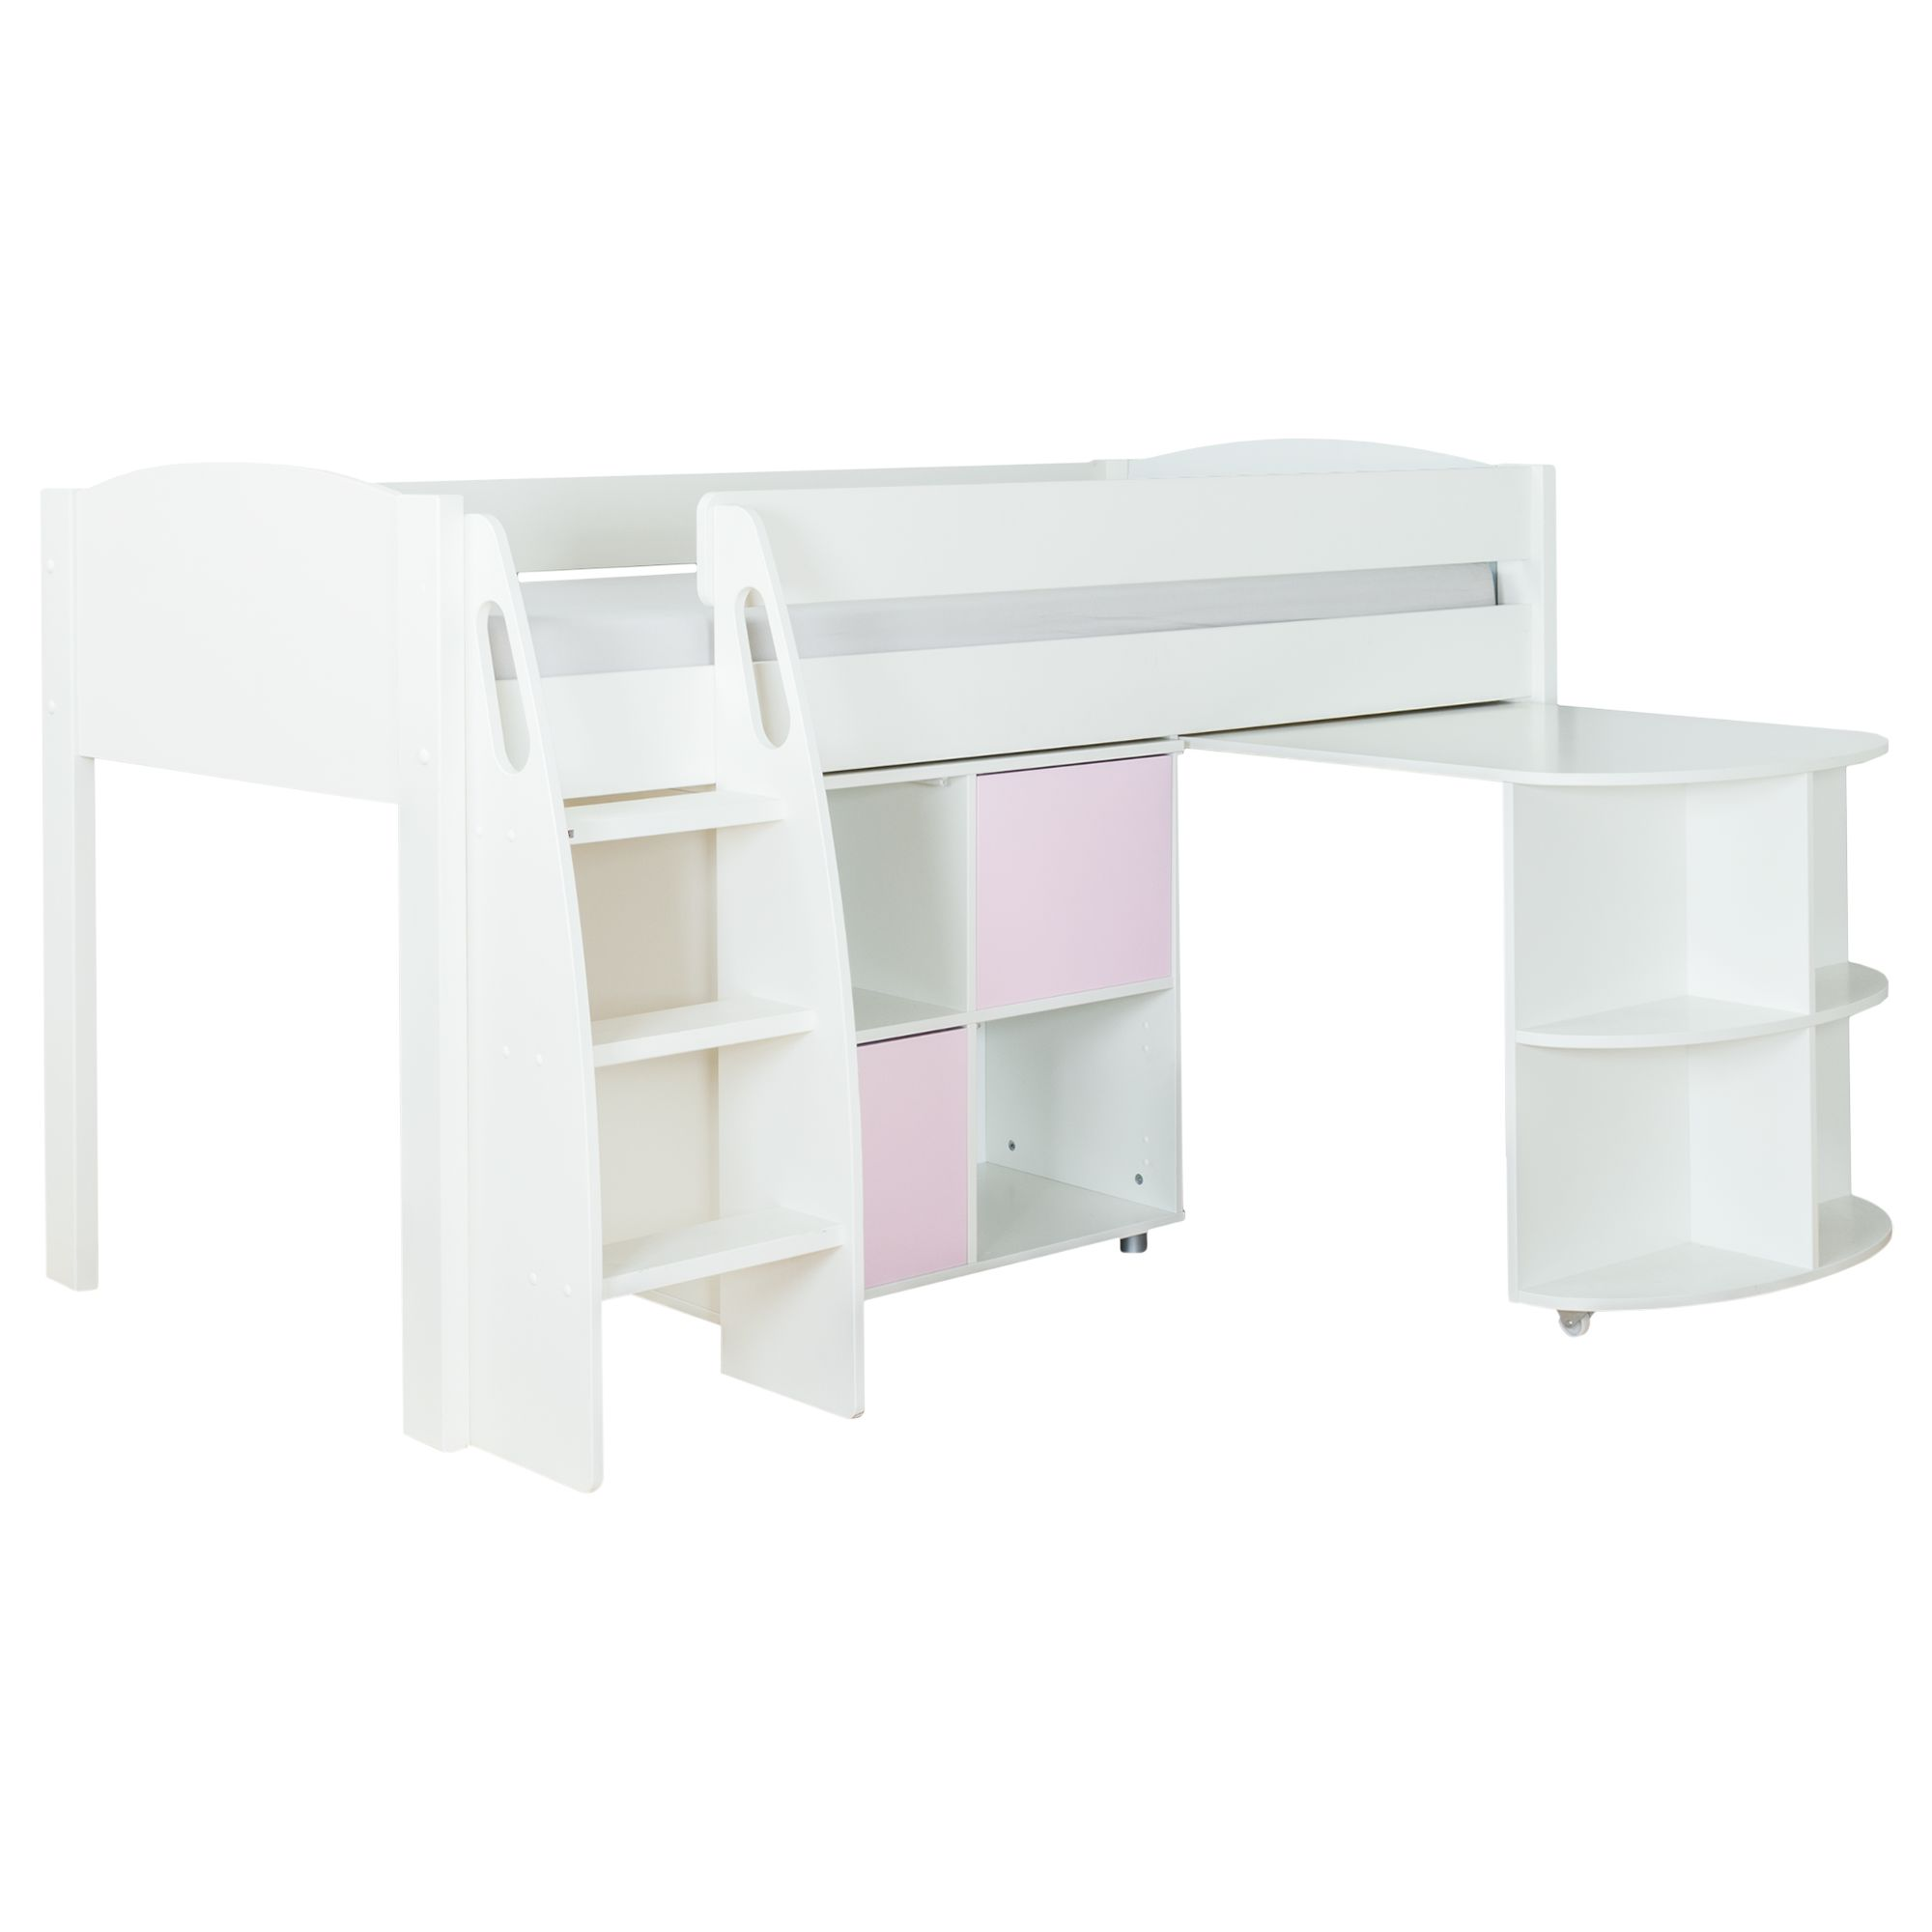 Stompa Stompa Uno S Plus Mid-Sleeper with White Headboard, Pull-Out Desk and 2 Door Cube Unit